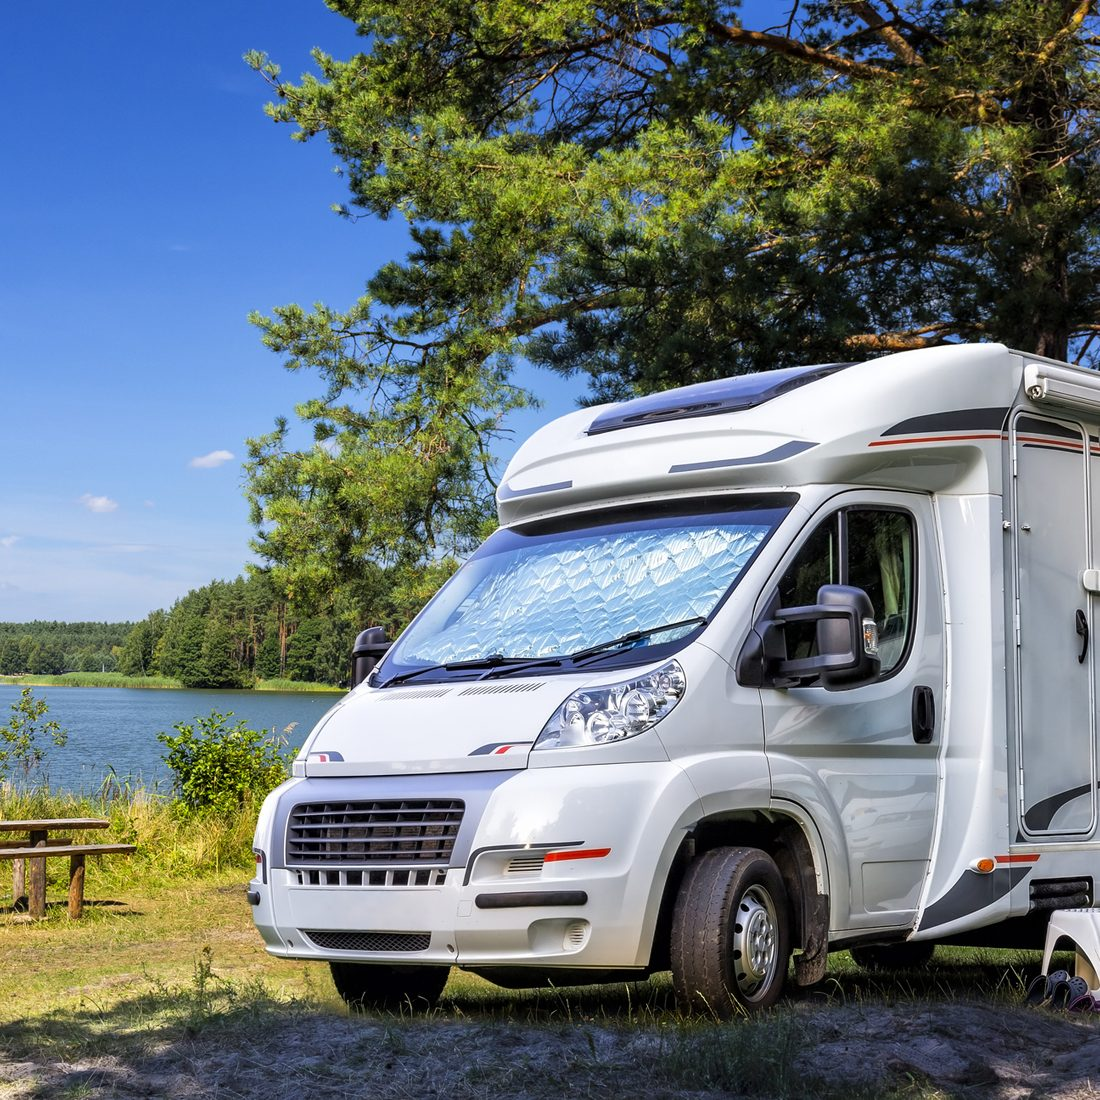 Holiday with motor home at the lake, Warmia-Masuria Province, Poland